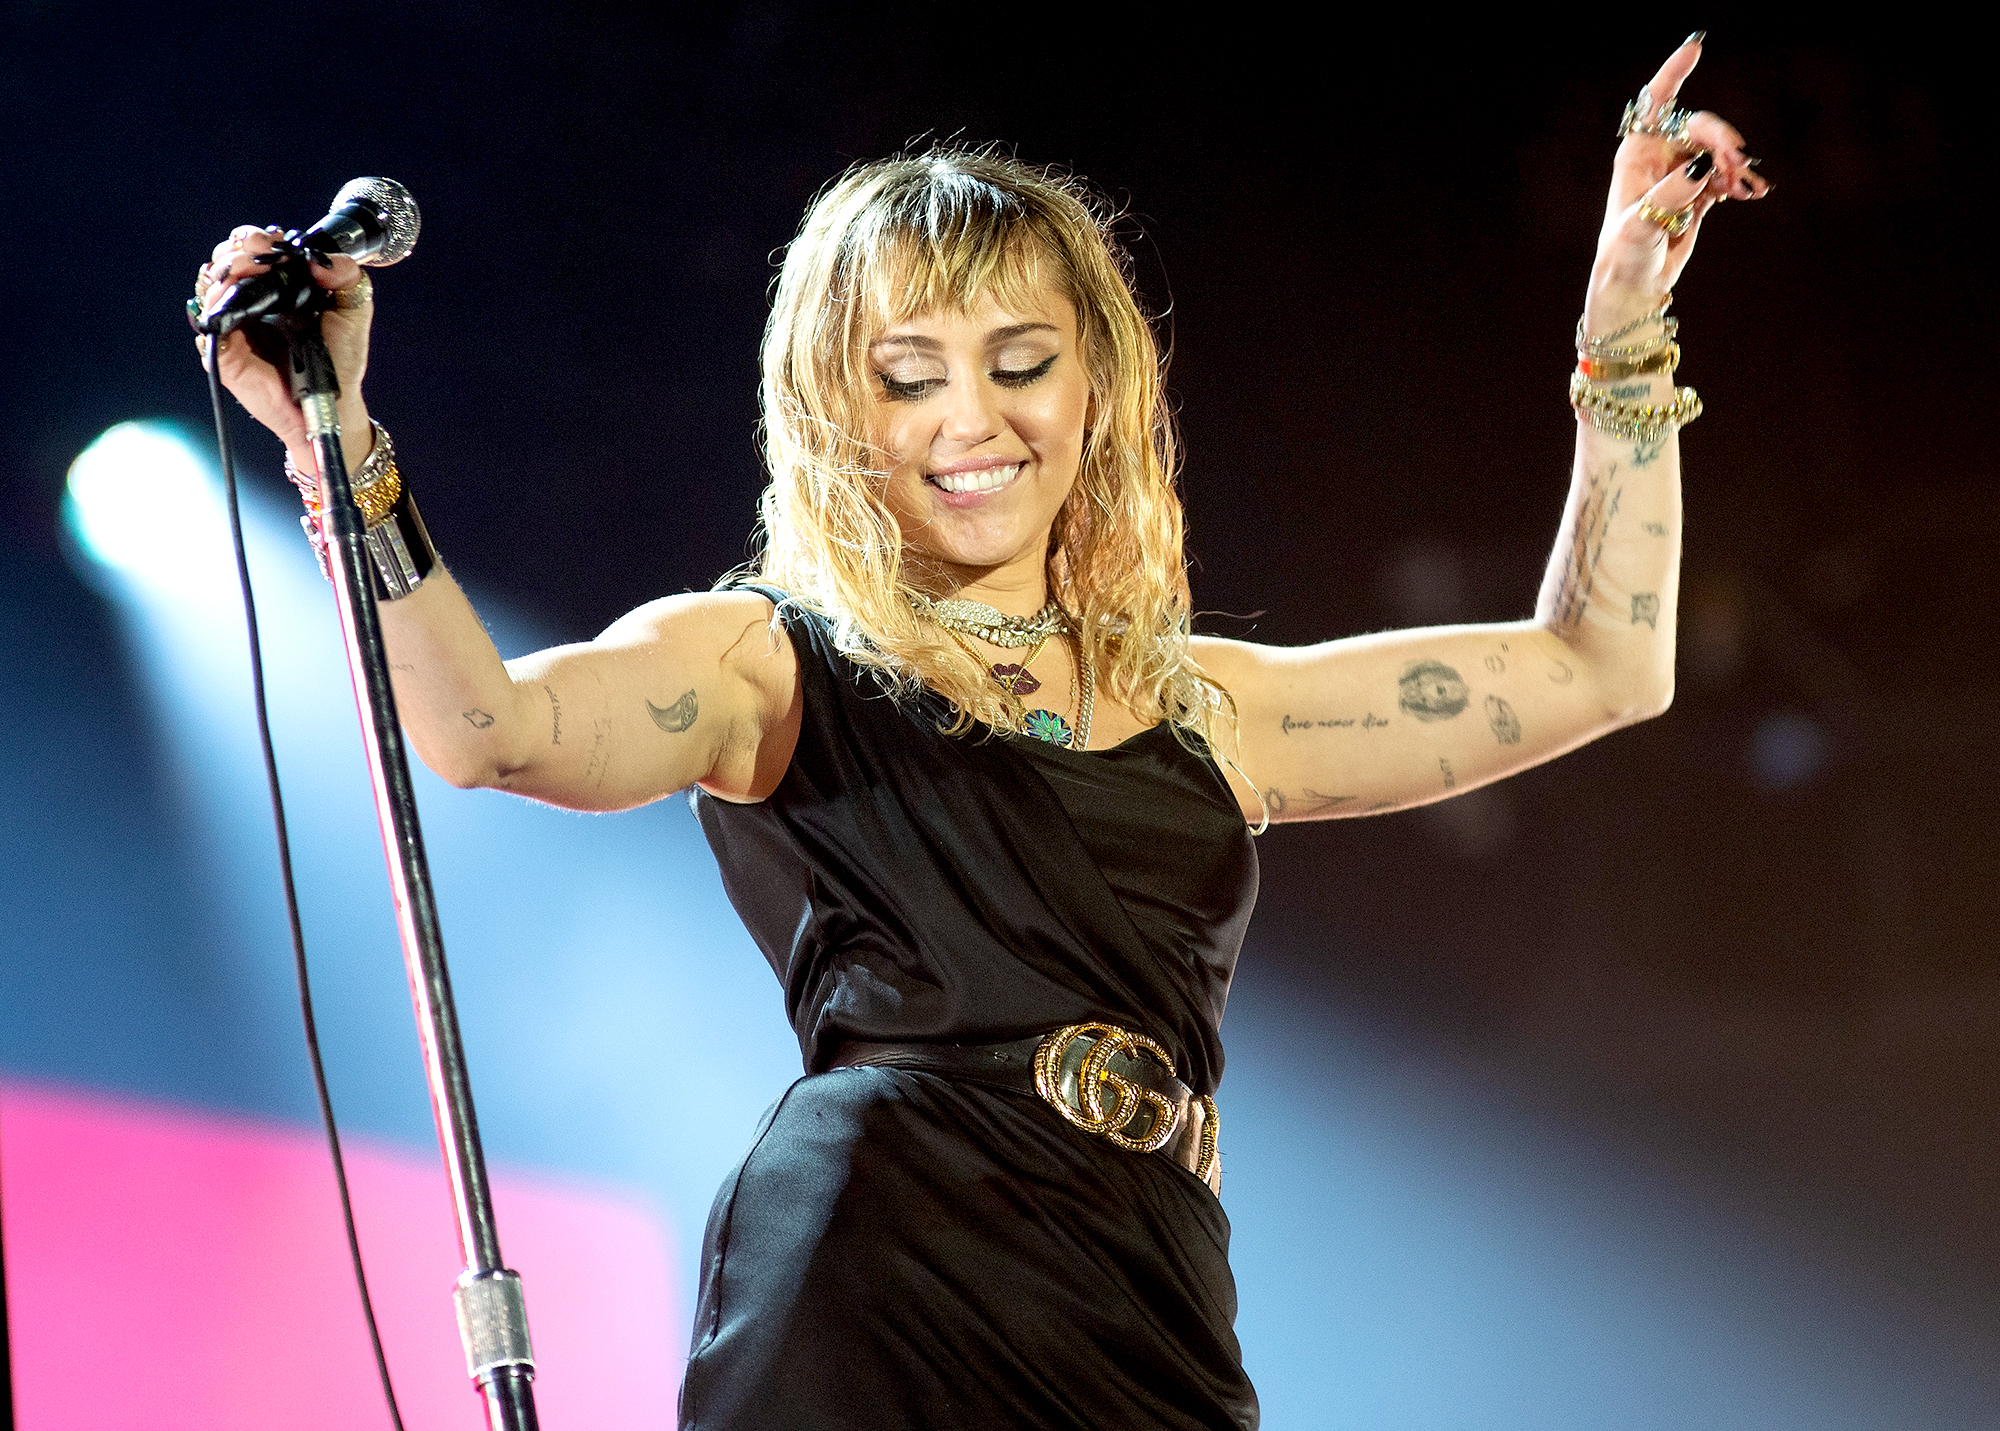 Miley-Cyrus-Releases-EP-She-Is-Coming